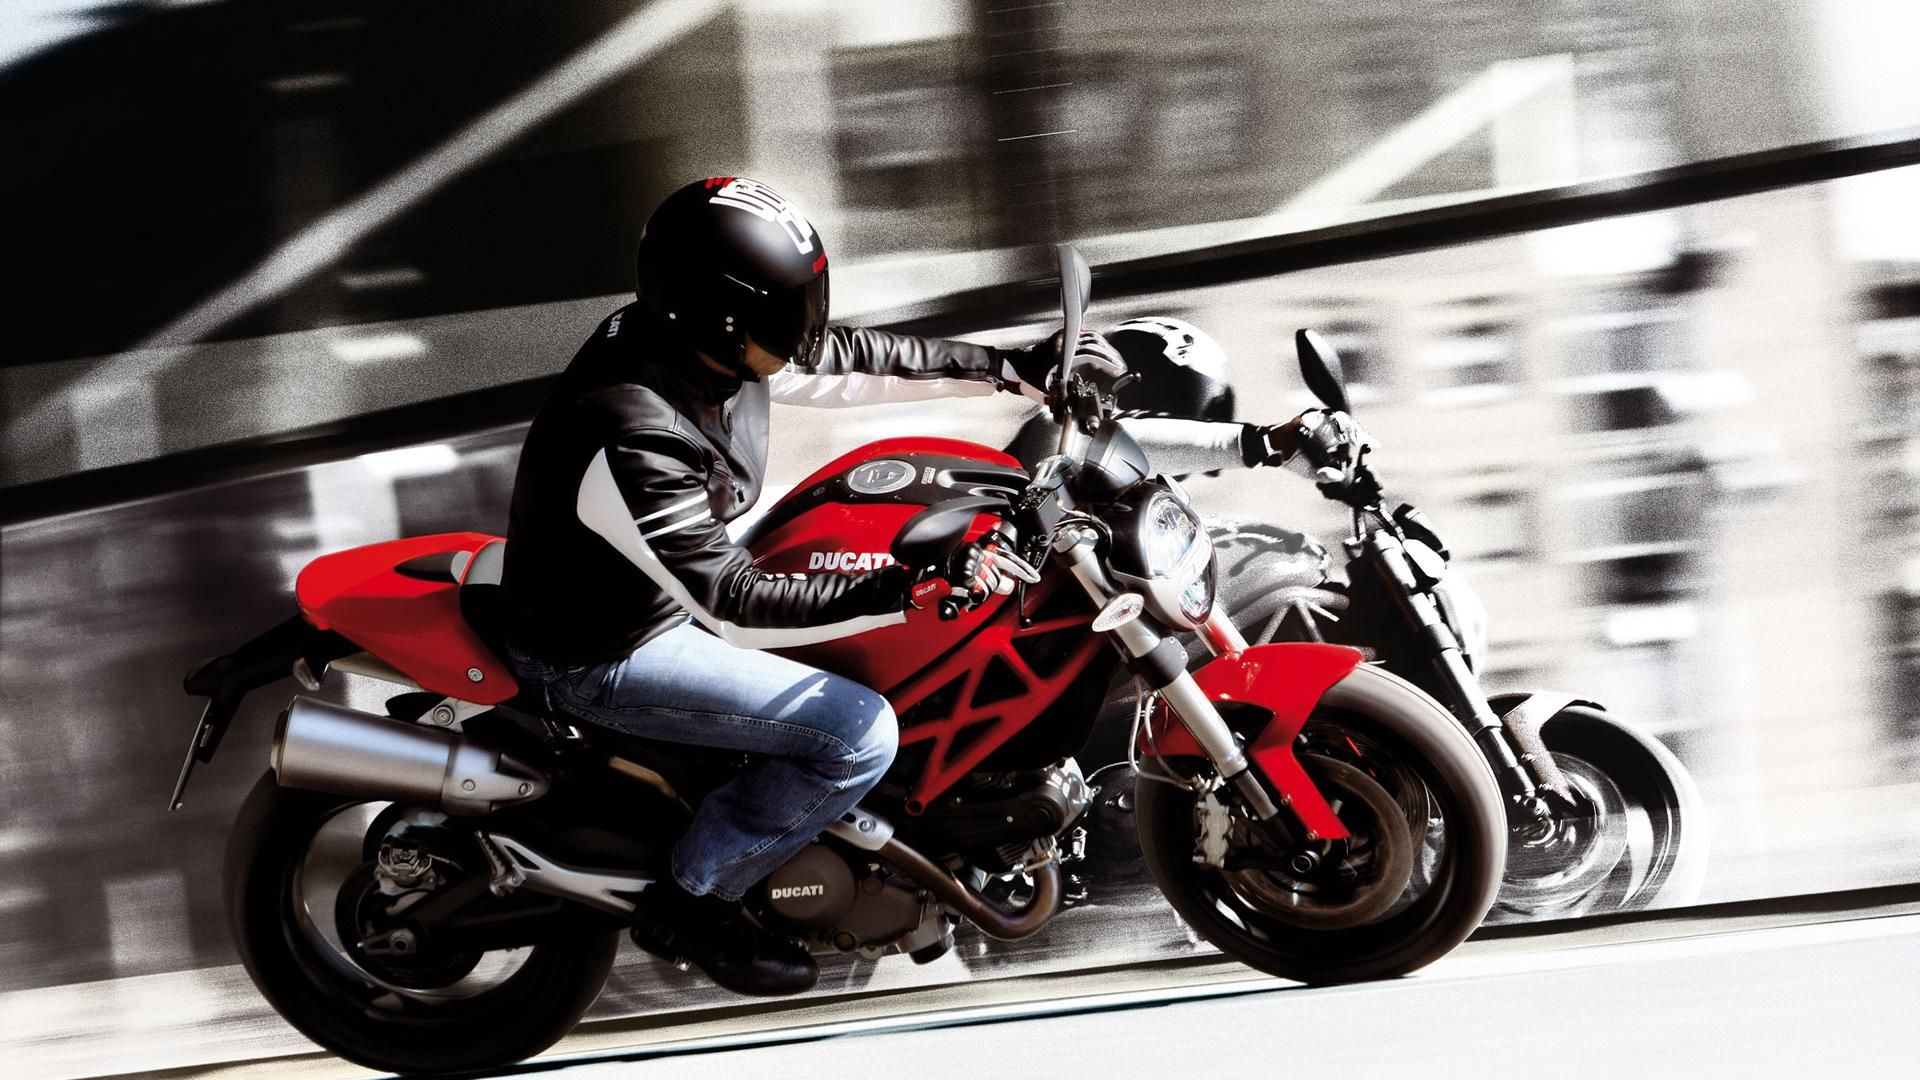 Ducati Streetfighter Wallpaper Sport Rider